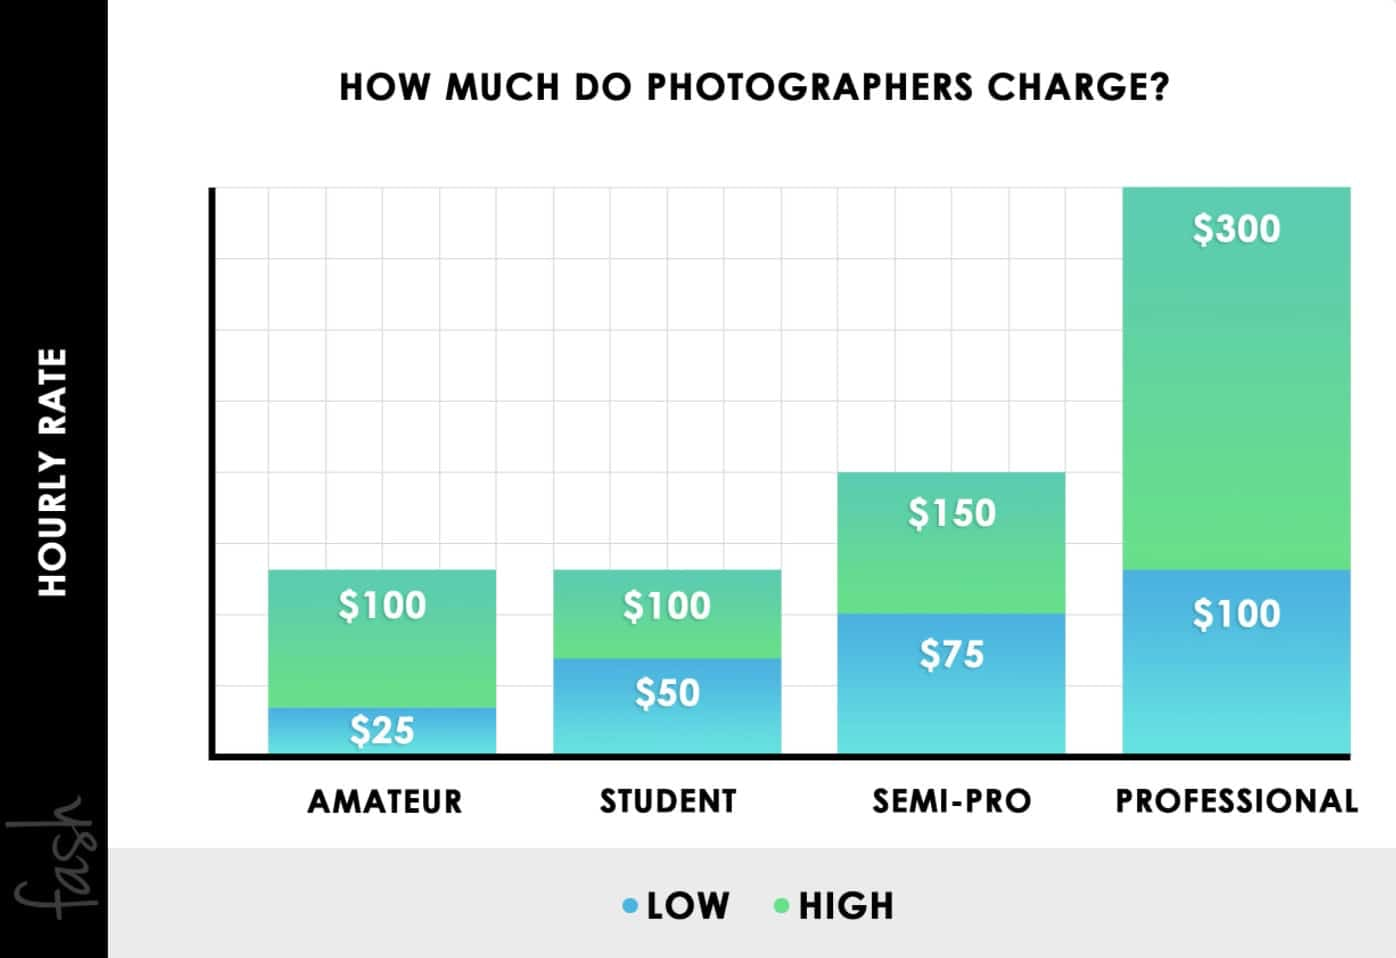 Fash How Much Do Photographers Charge Per Hour in USD